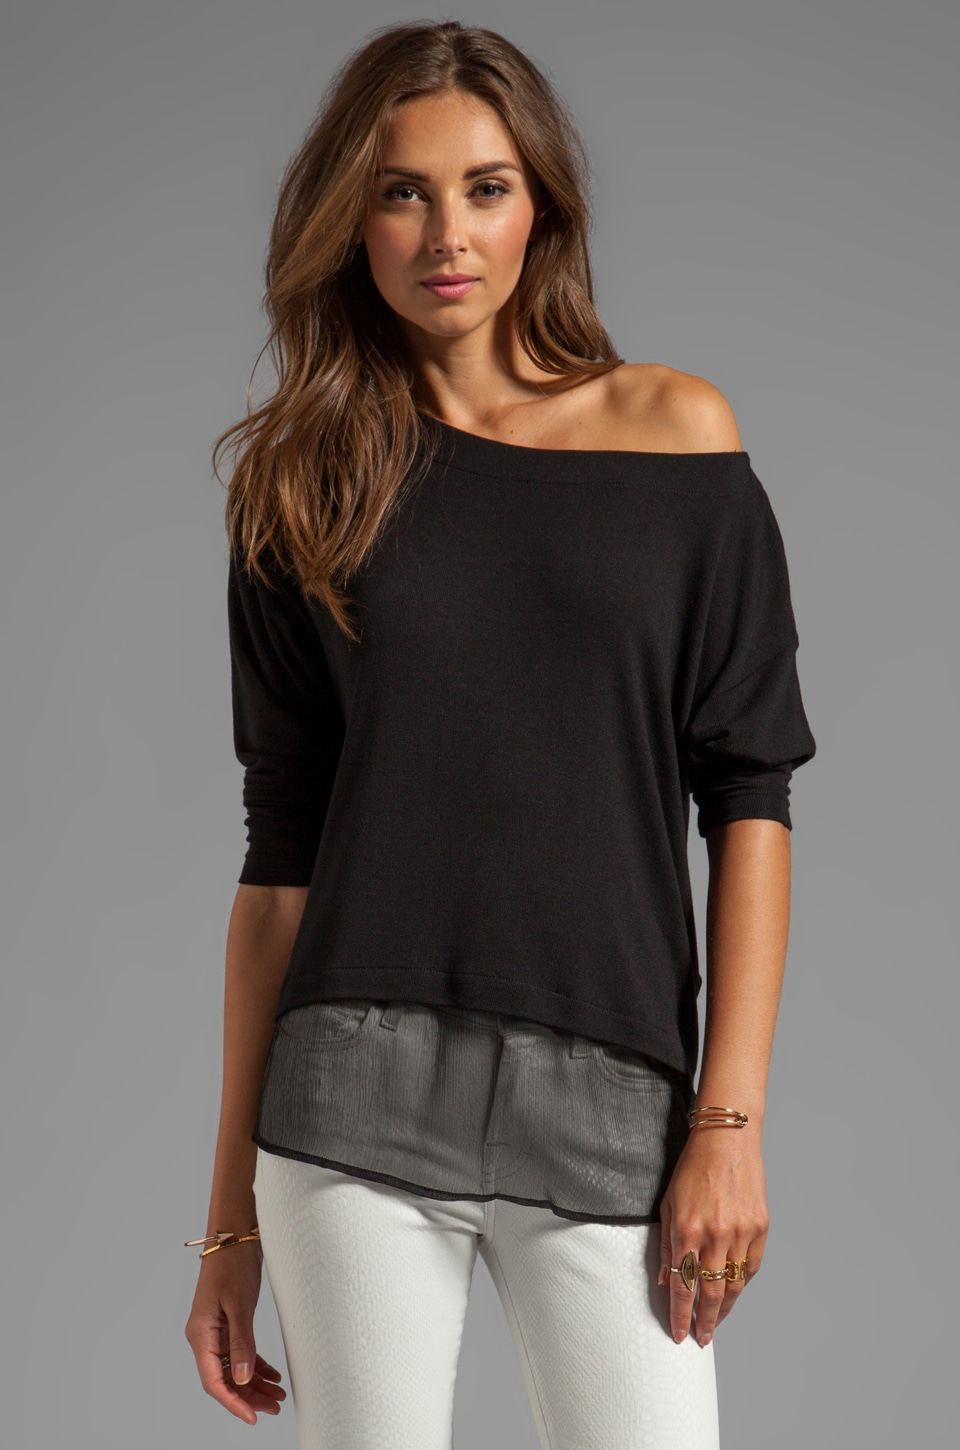 Kain Pell Sweater in Black